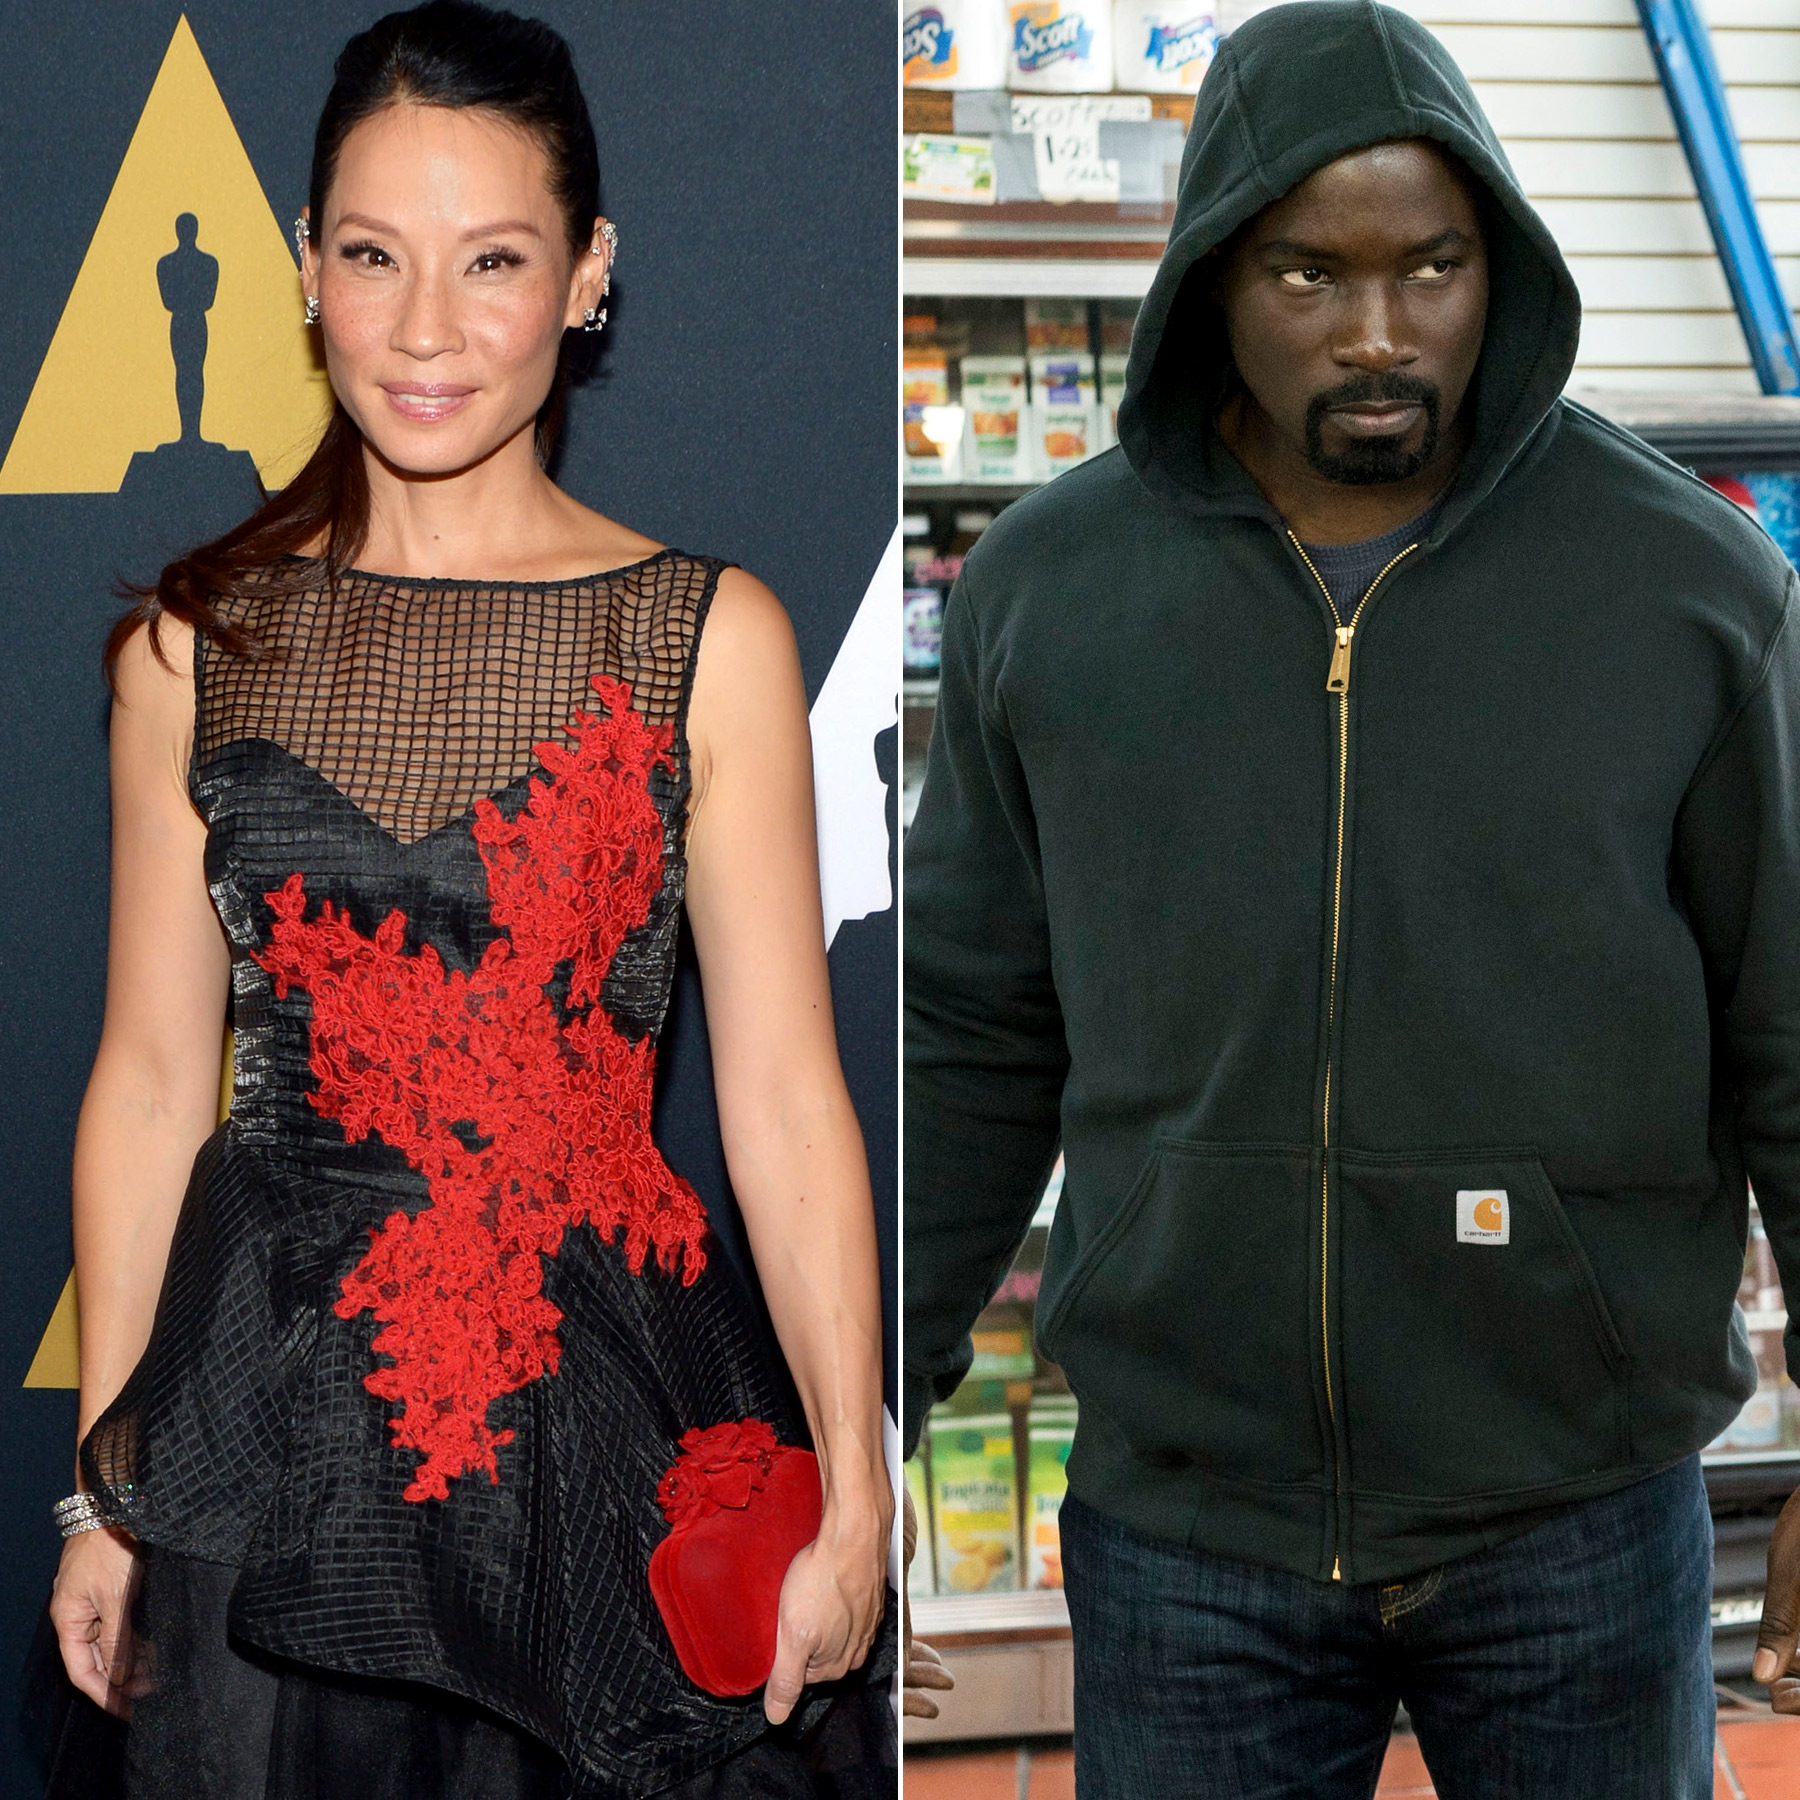 Lucy-LiuLuke-Cage